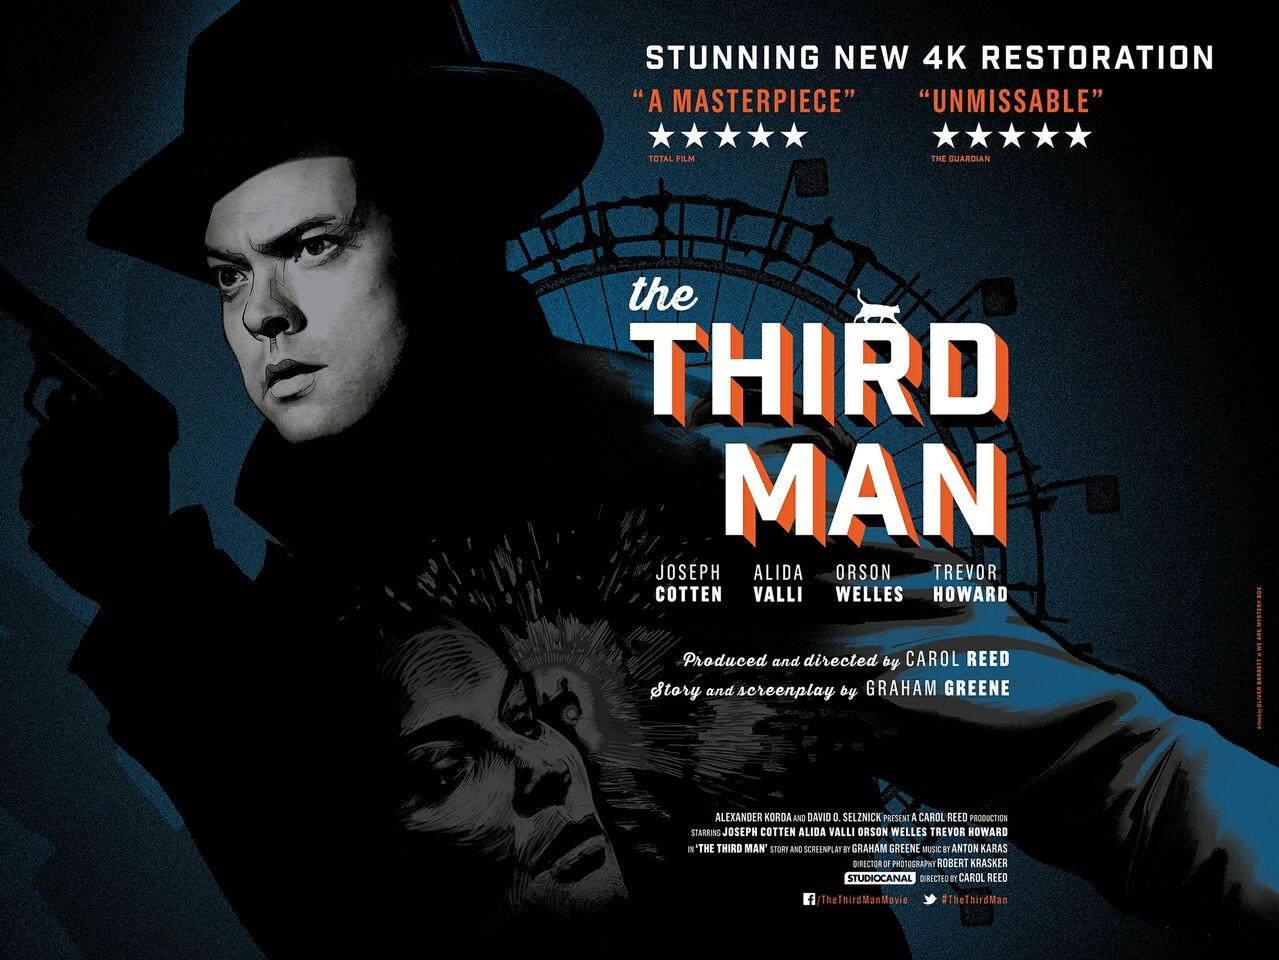 the third man by graham greene and carol reed essay